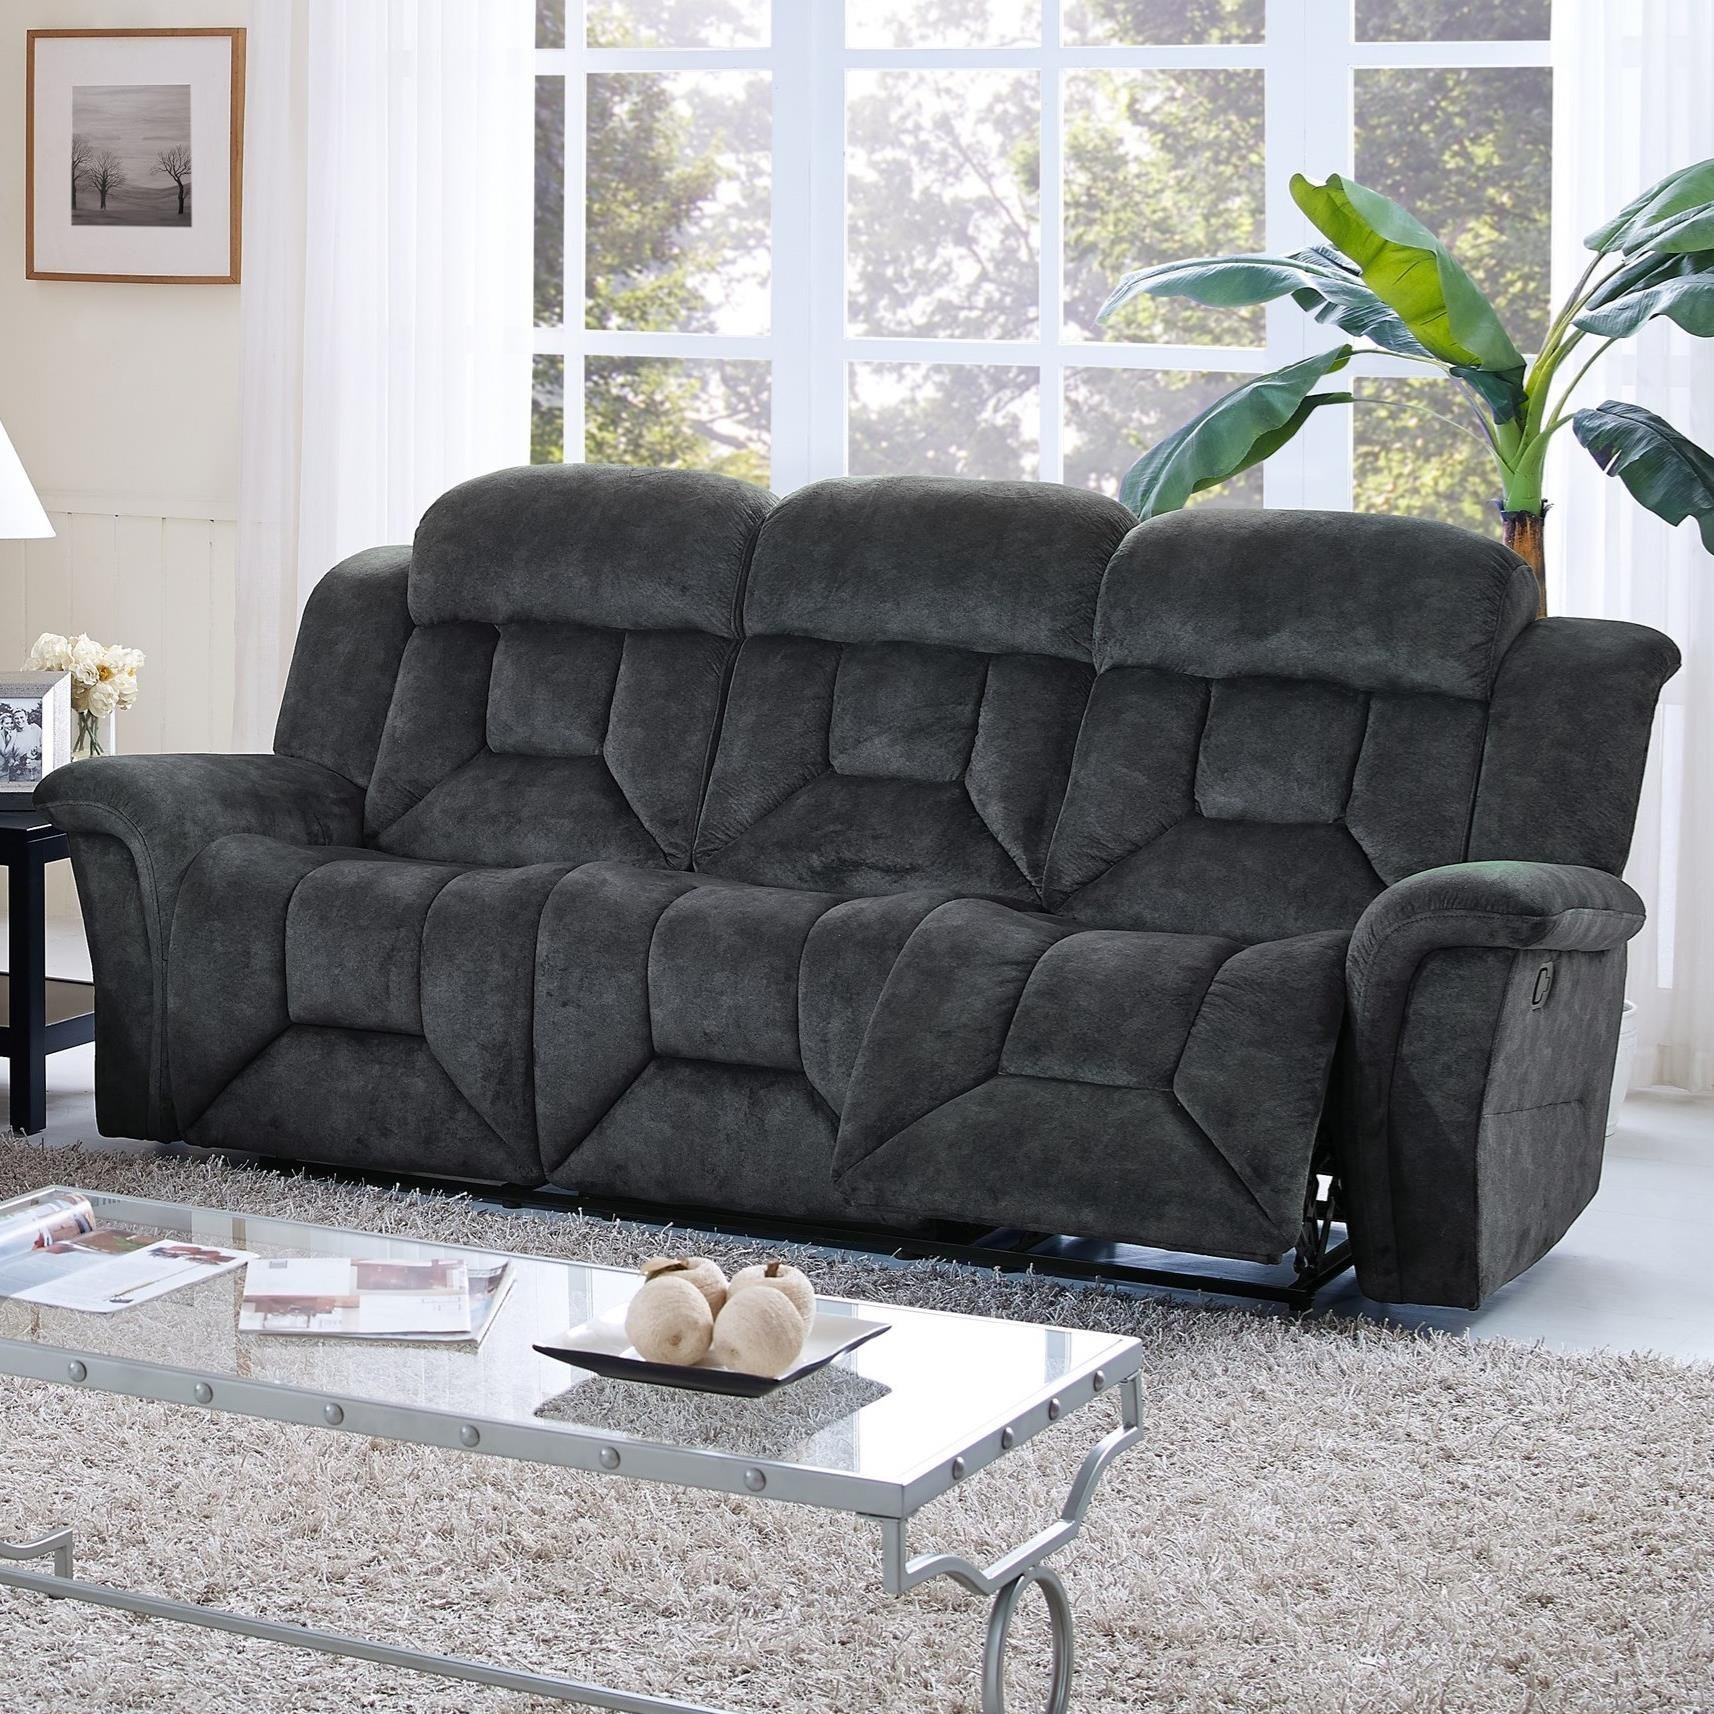 New Classic Jemma Casual Power Dual Recliner Sofa With Window Pane Tailoring